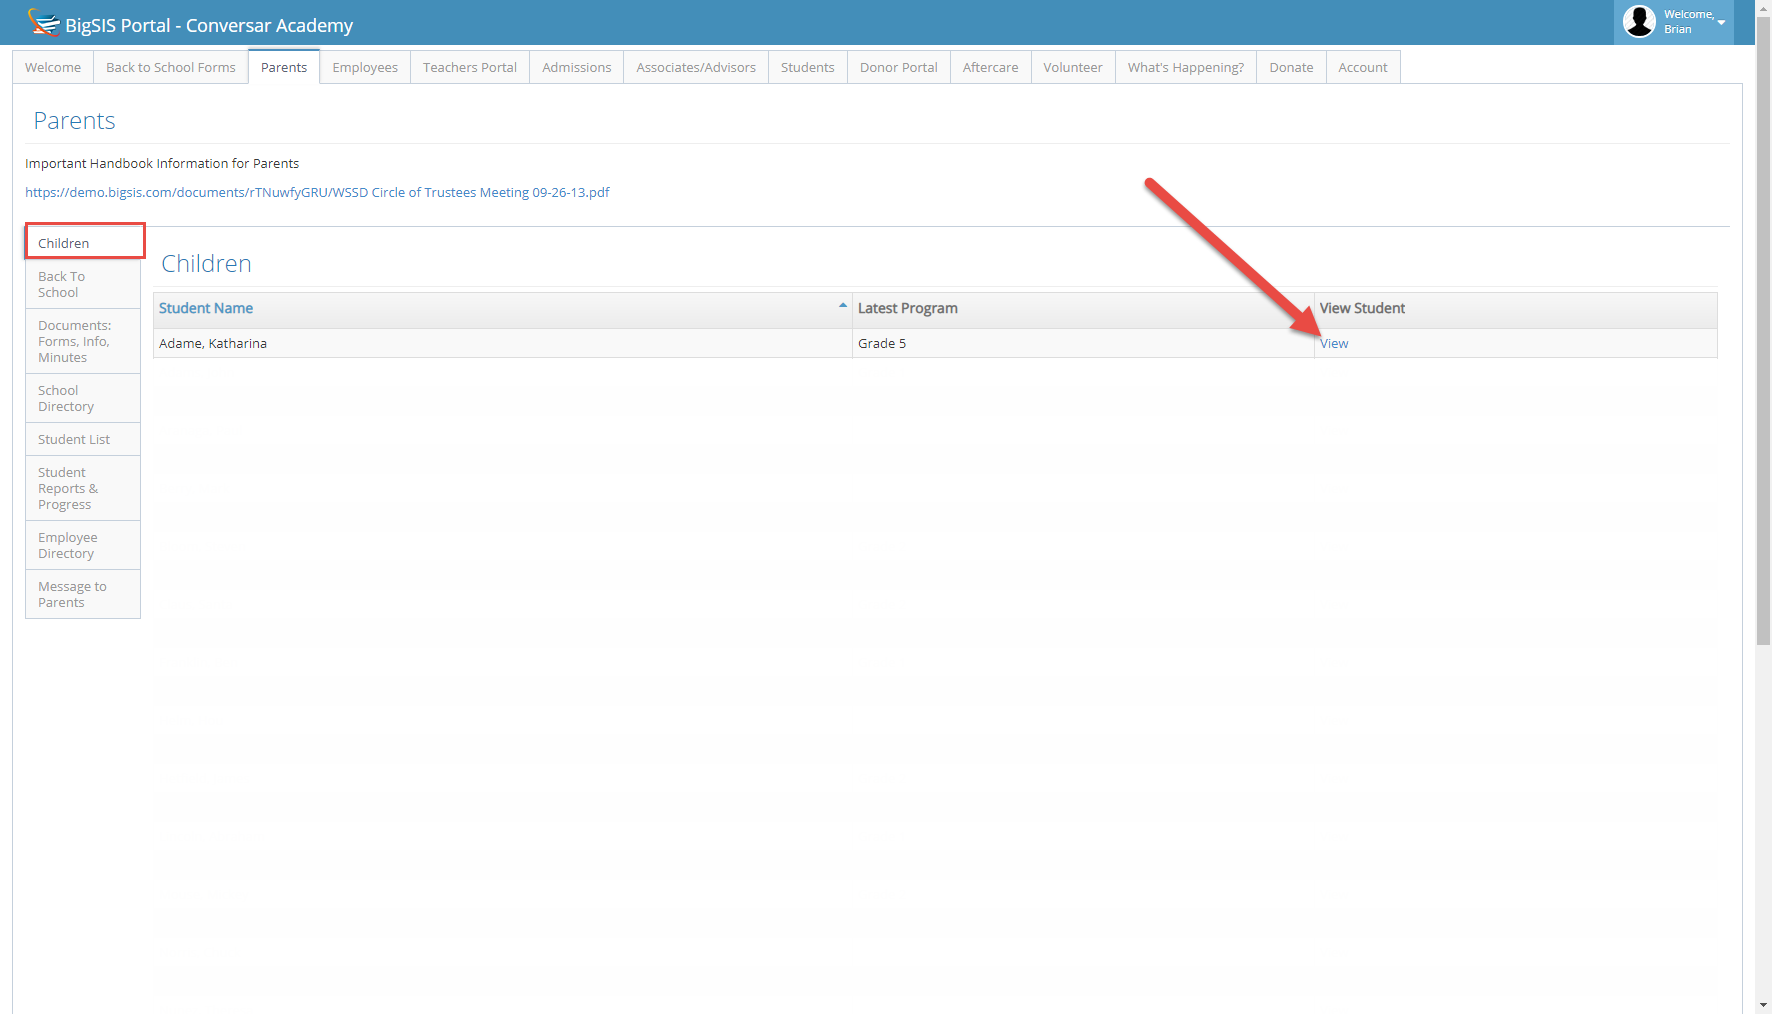 Adding Additional Contacts for a Student from the Parent Portal